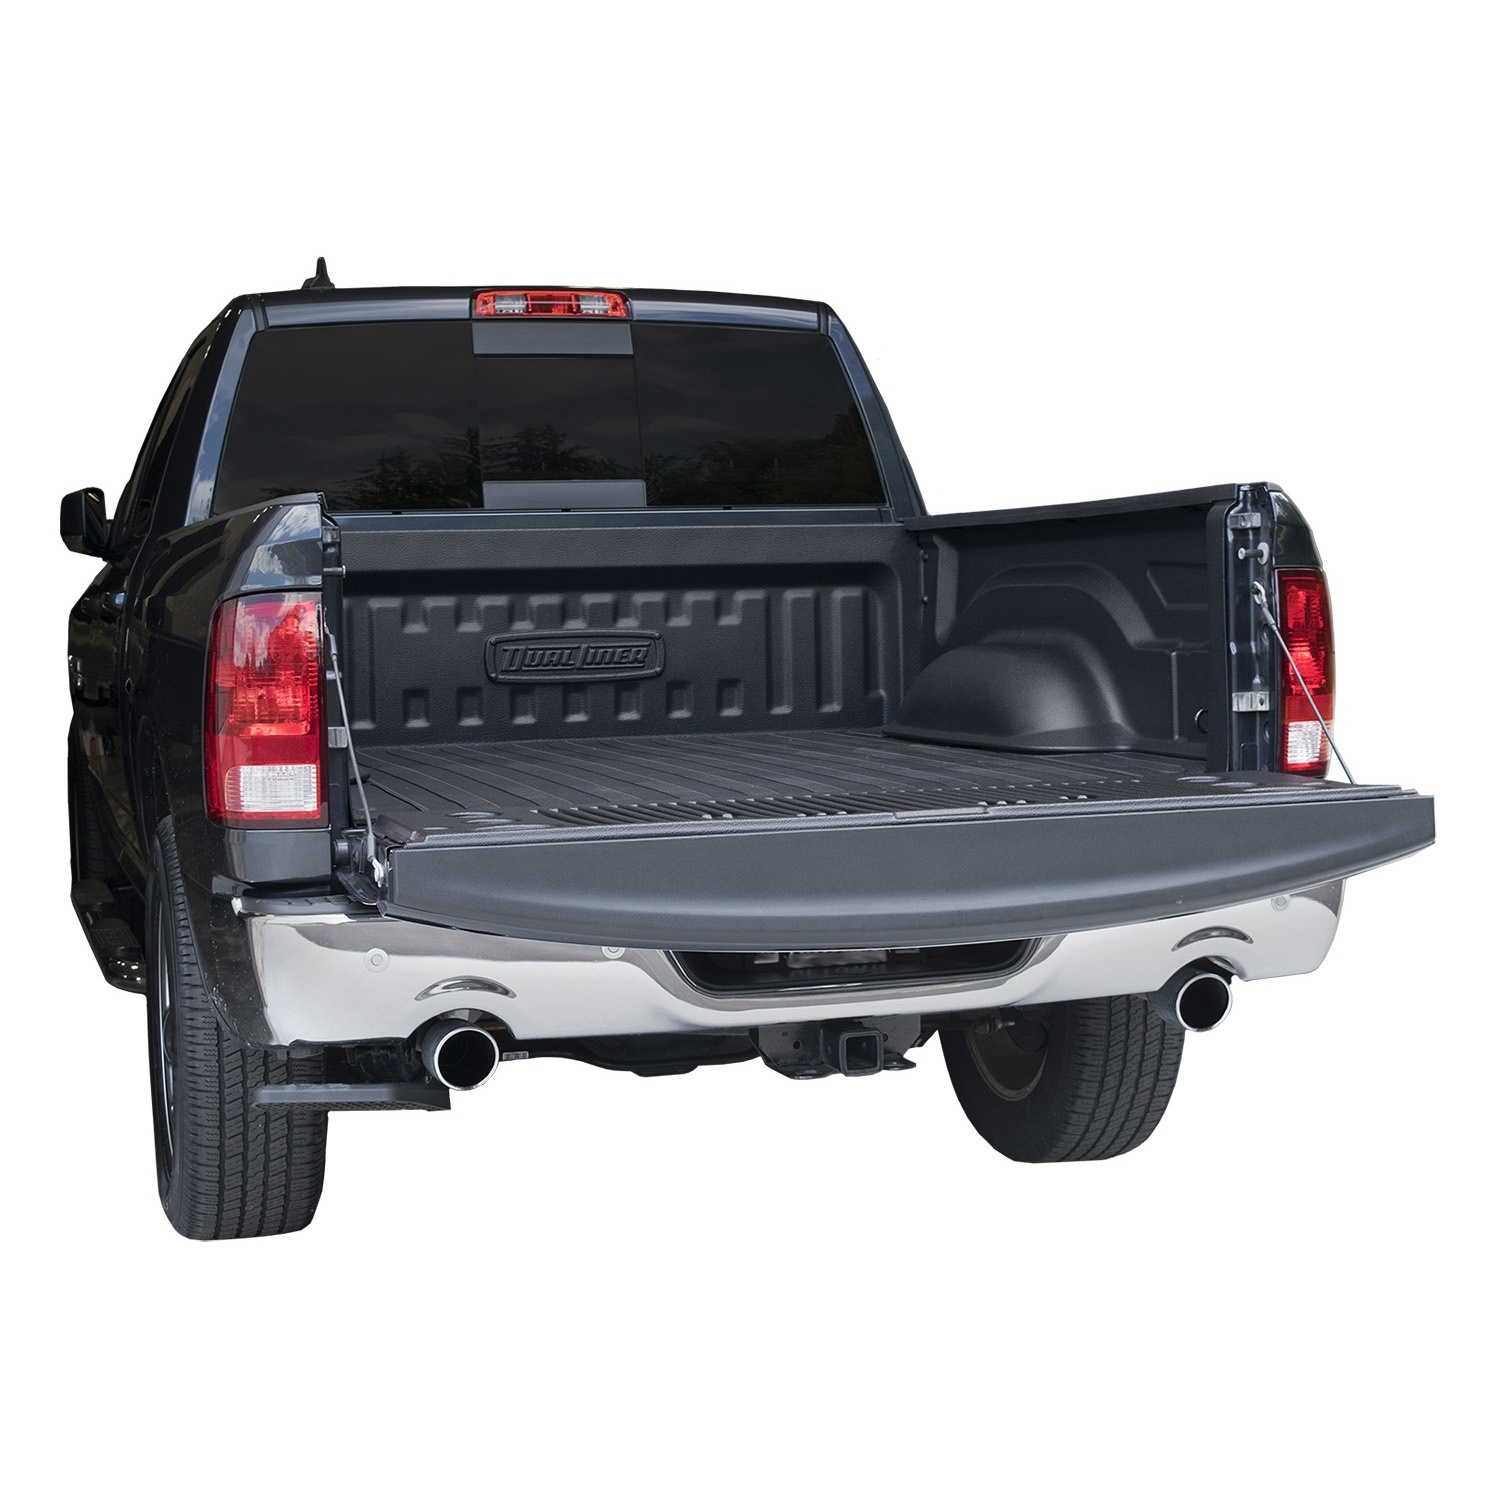 Dodge Ram Bed Mat: Protect Your 2010-2015 Dodge Ram 1500 W/ 8' Bed